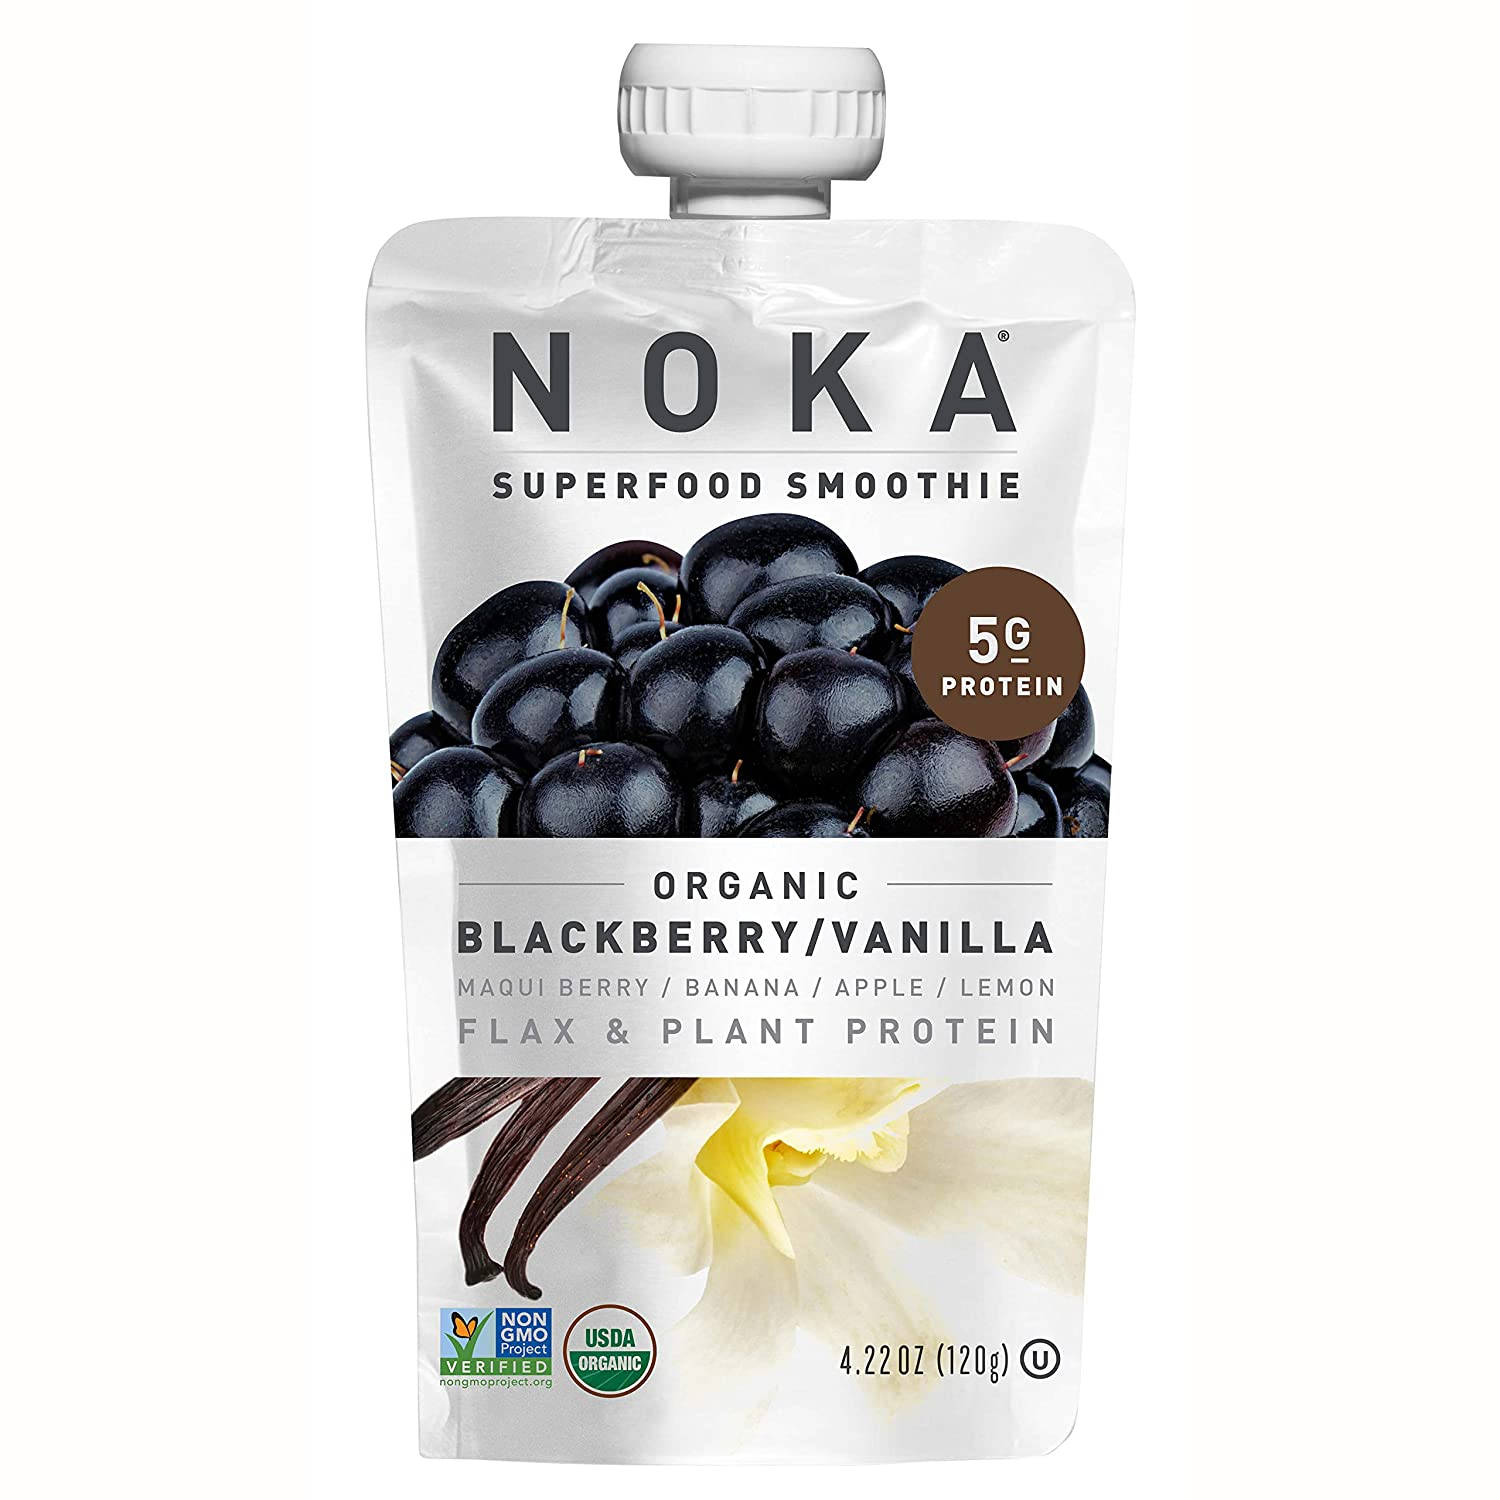 NOKA Superfood Smoothie Pouches (Blackberry Vanilla) 6 Pack | 100% Organic Healthy Fruit And Veggie Squeeze Snack Packs | Meal Replacement | Non GMO, Gluten Free, Vegan, 5g Plant Protein | 4.2oz Each